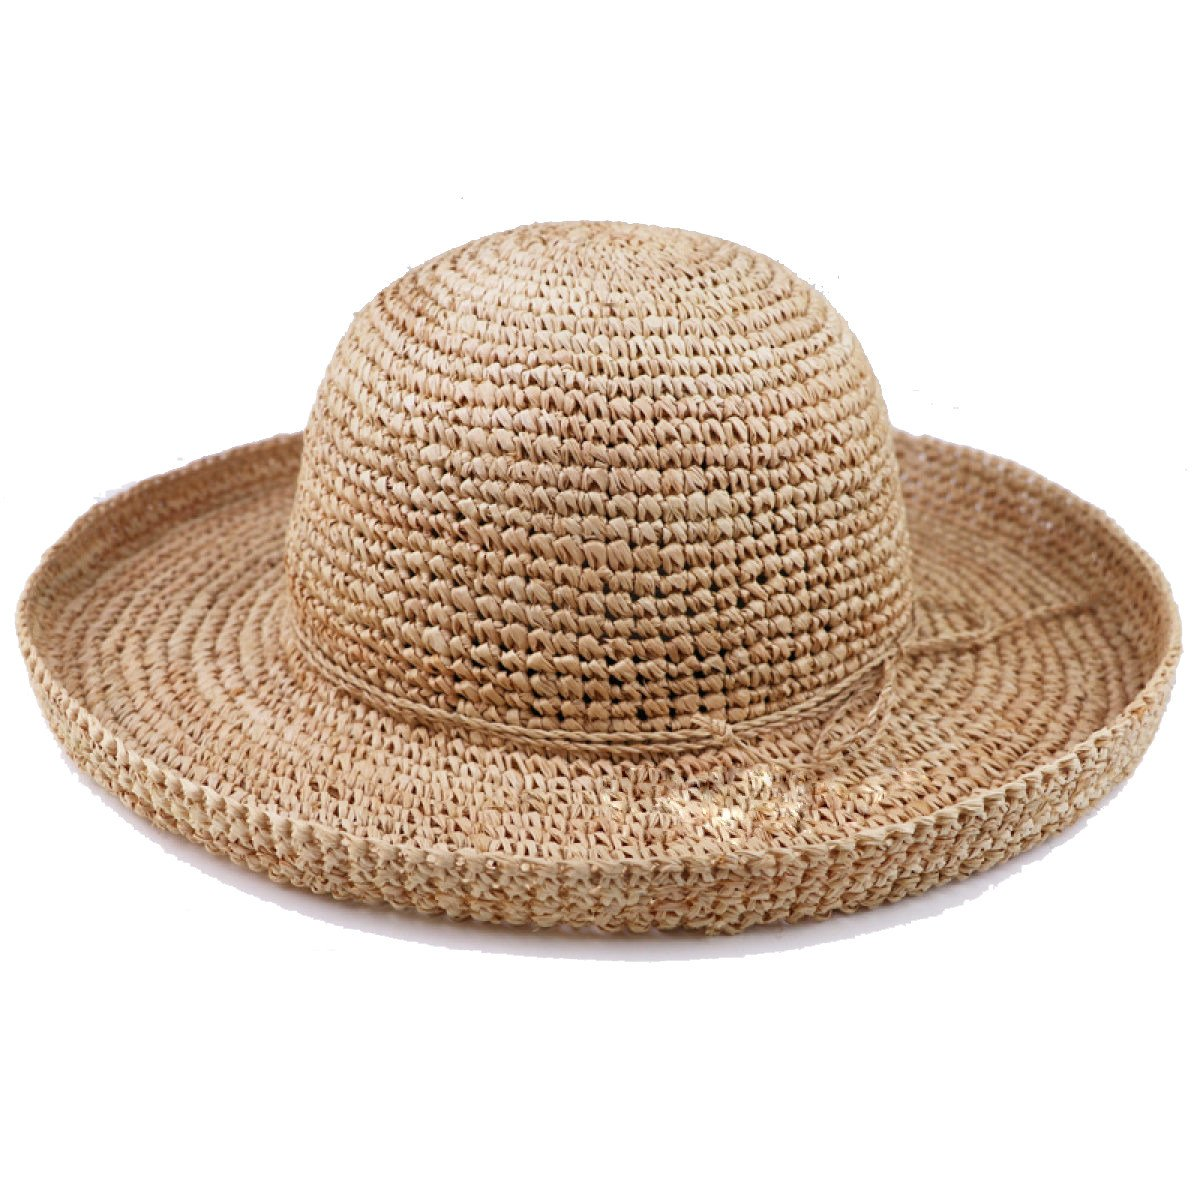 Rafi Grass Weaving Hats Spring And Summer New Handmade Knitted Hat Women Hat Large Curling Straw Hat 1-OneSize SJDT